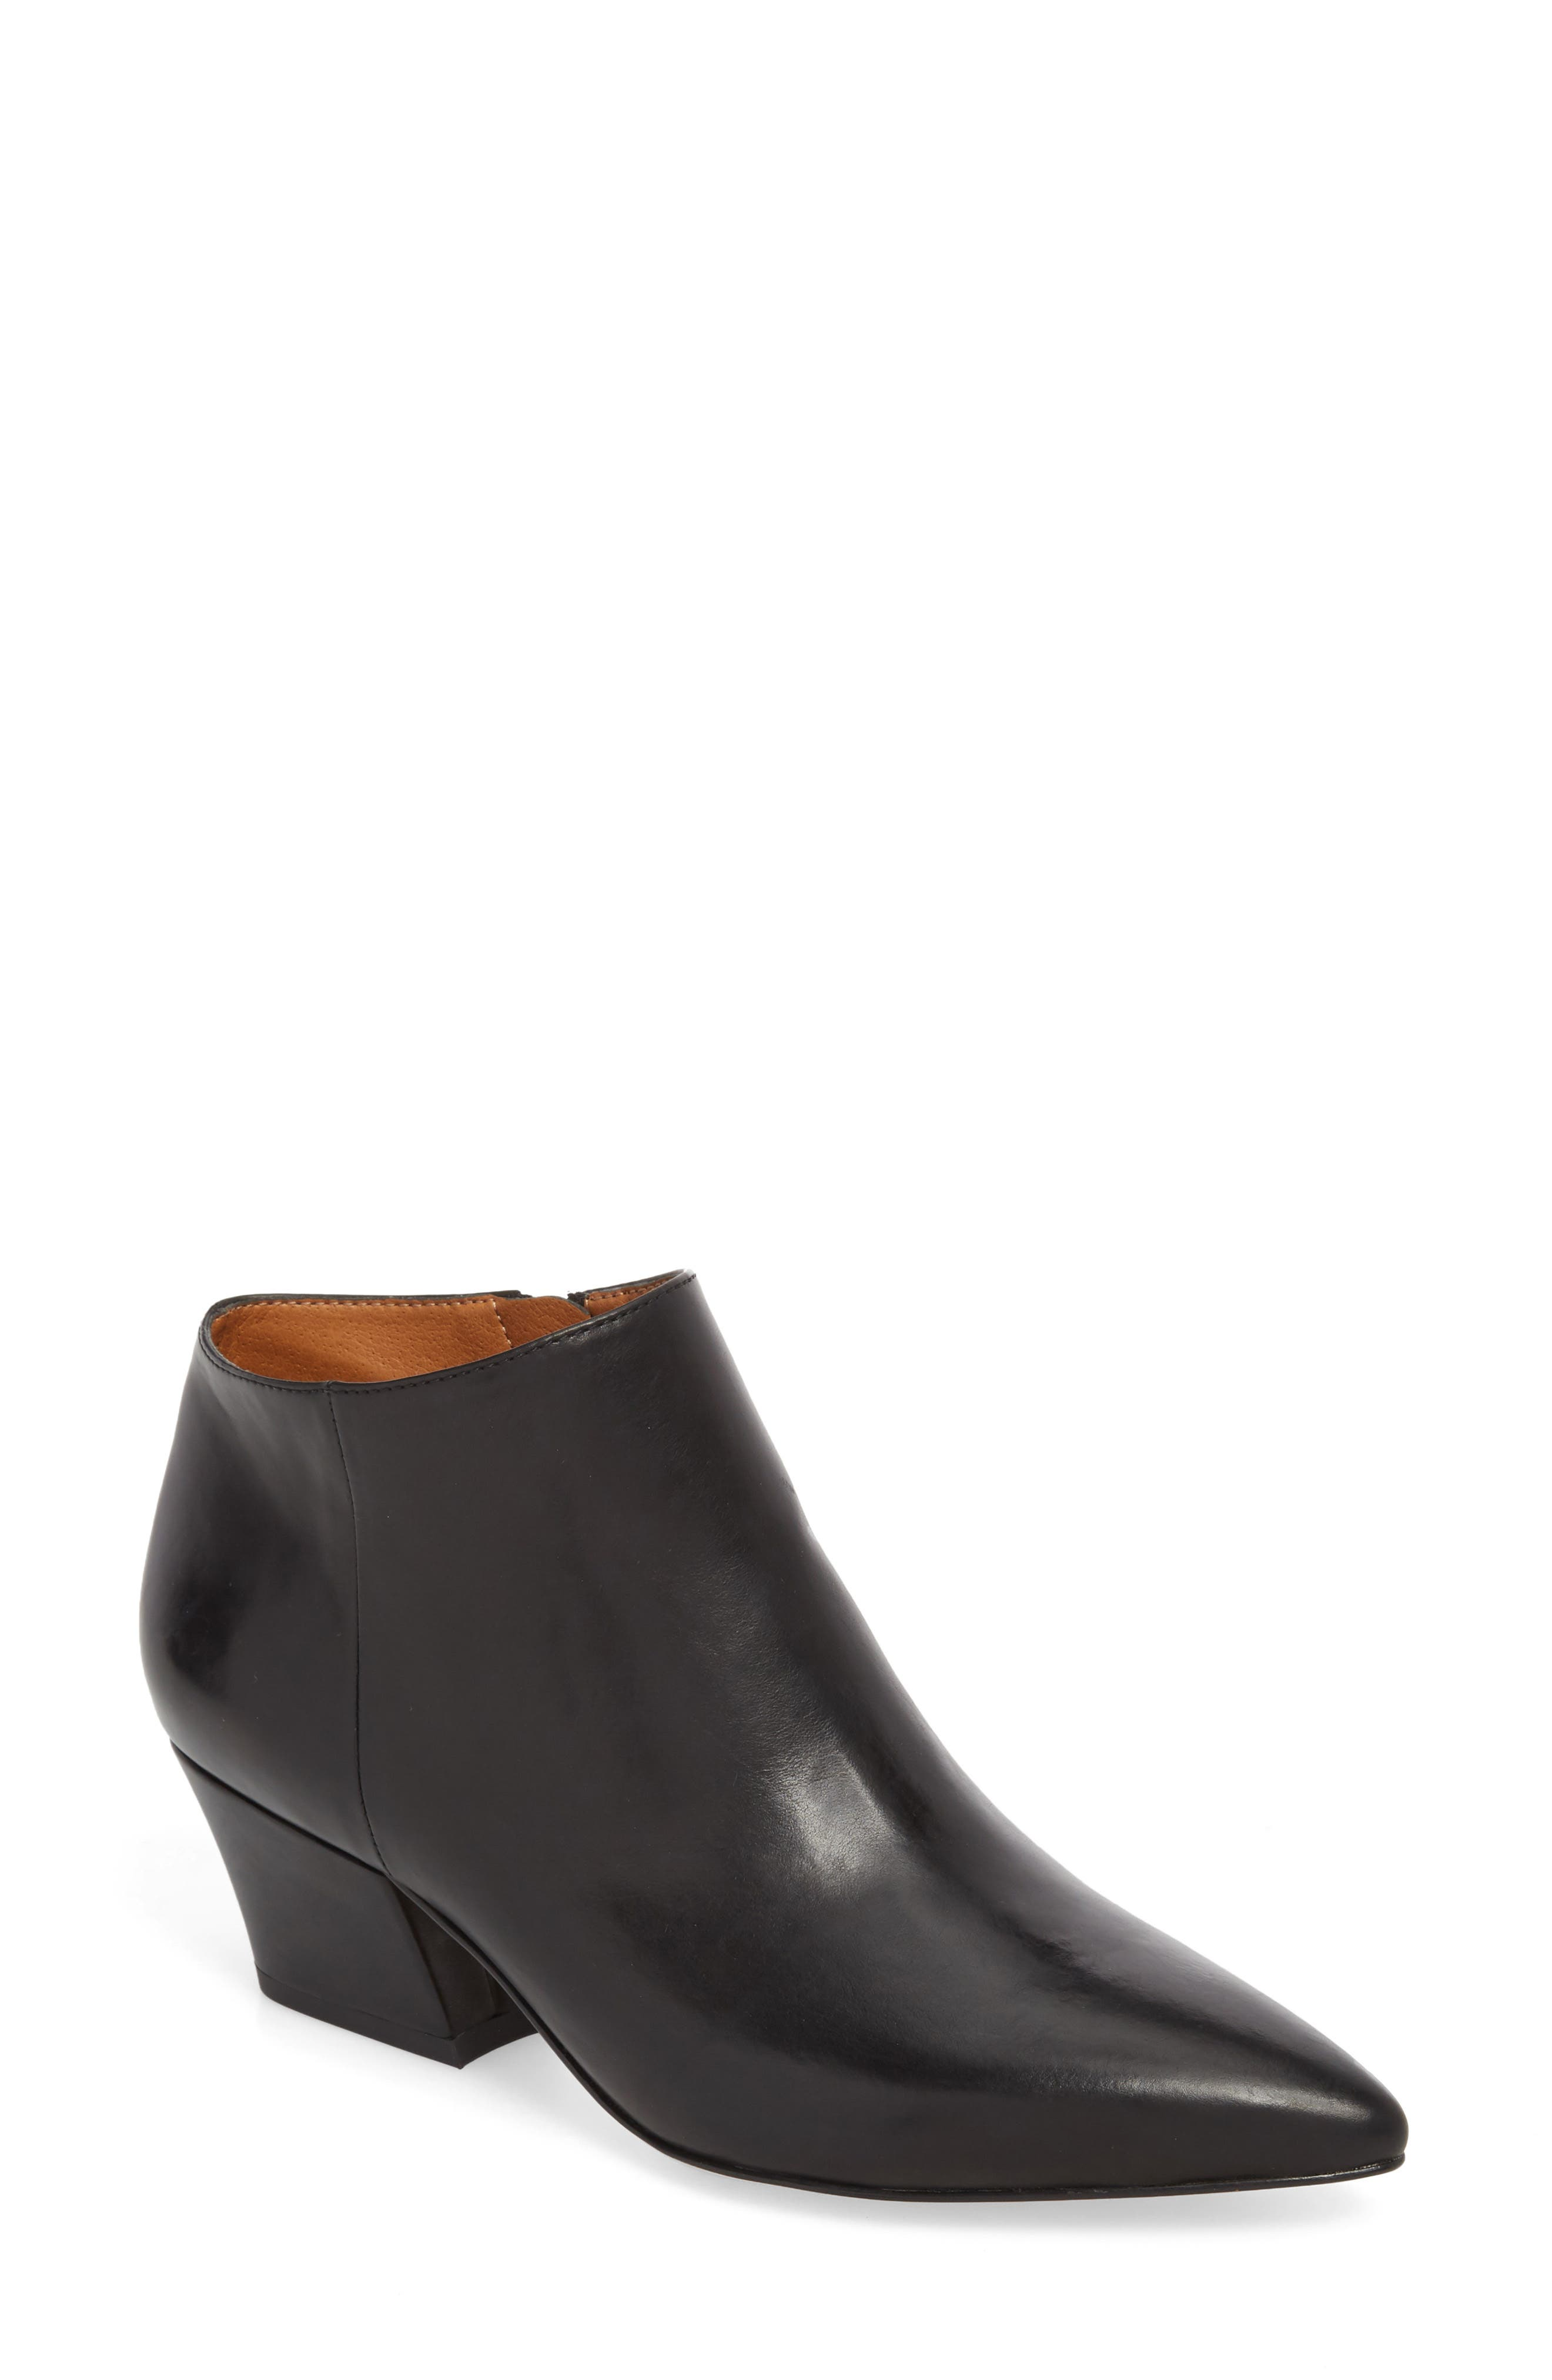 Lowe Bootie,                         Main,                         color, BLACK LEATHER